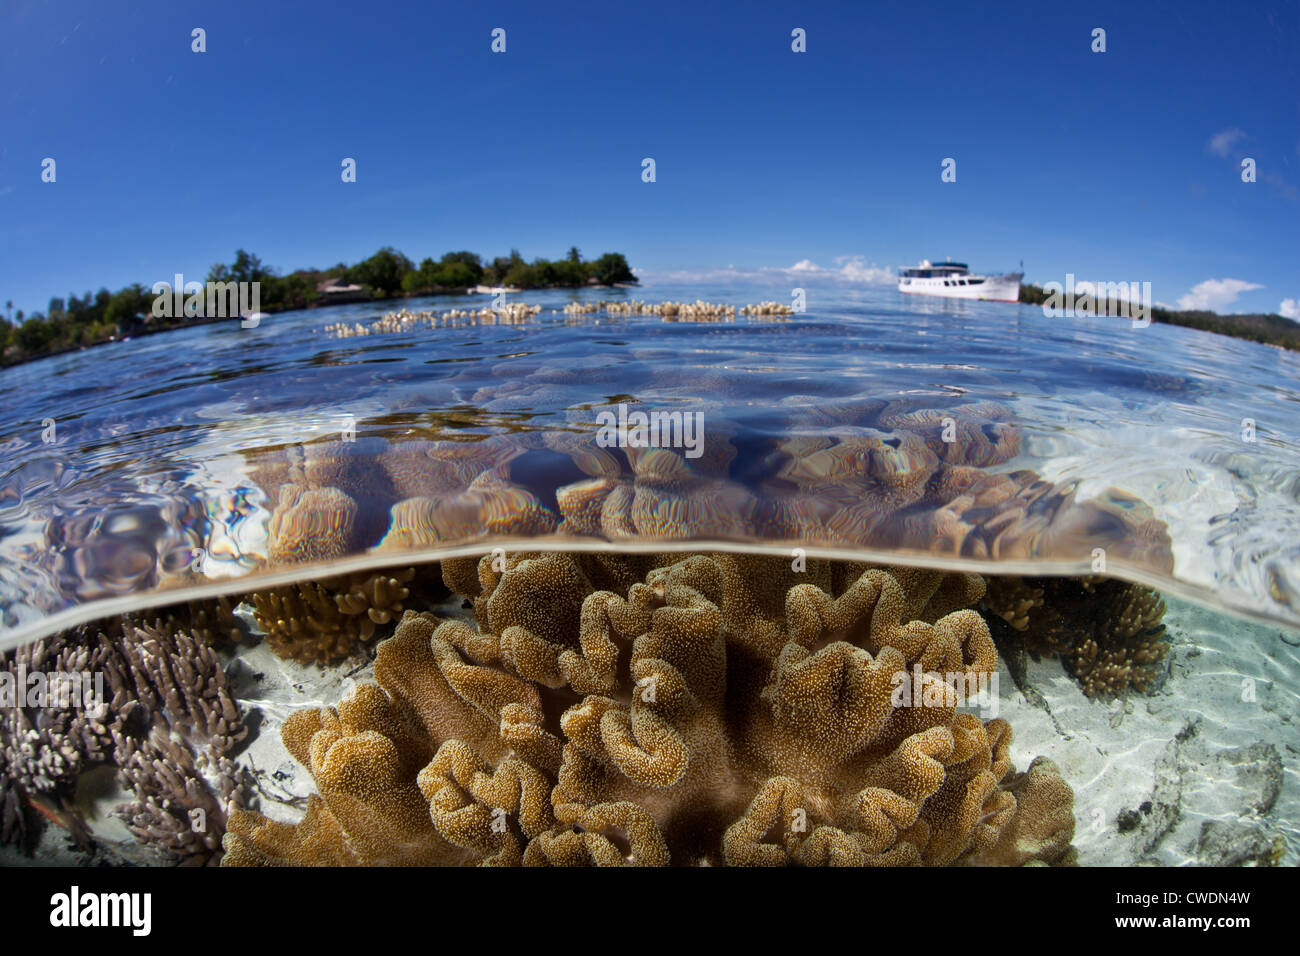 A liveaboard ship has anchored near a shallow coral reef where soft leather corals, Sarcophyton sp., grow. - Stock Image